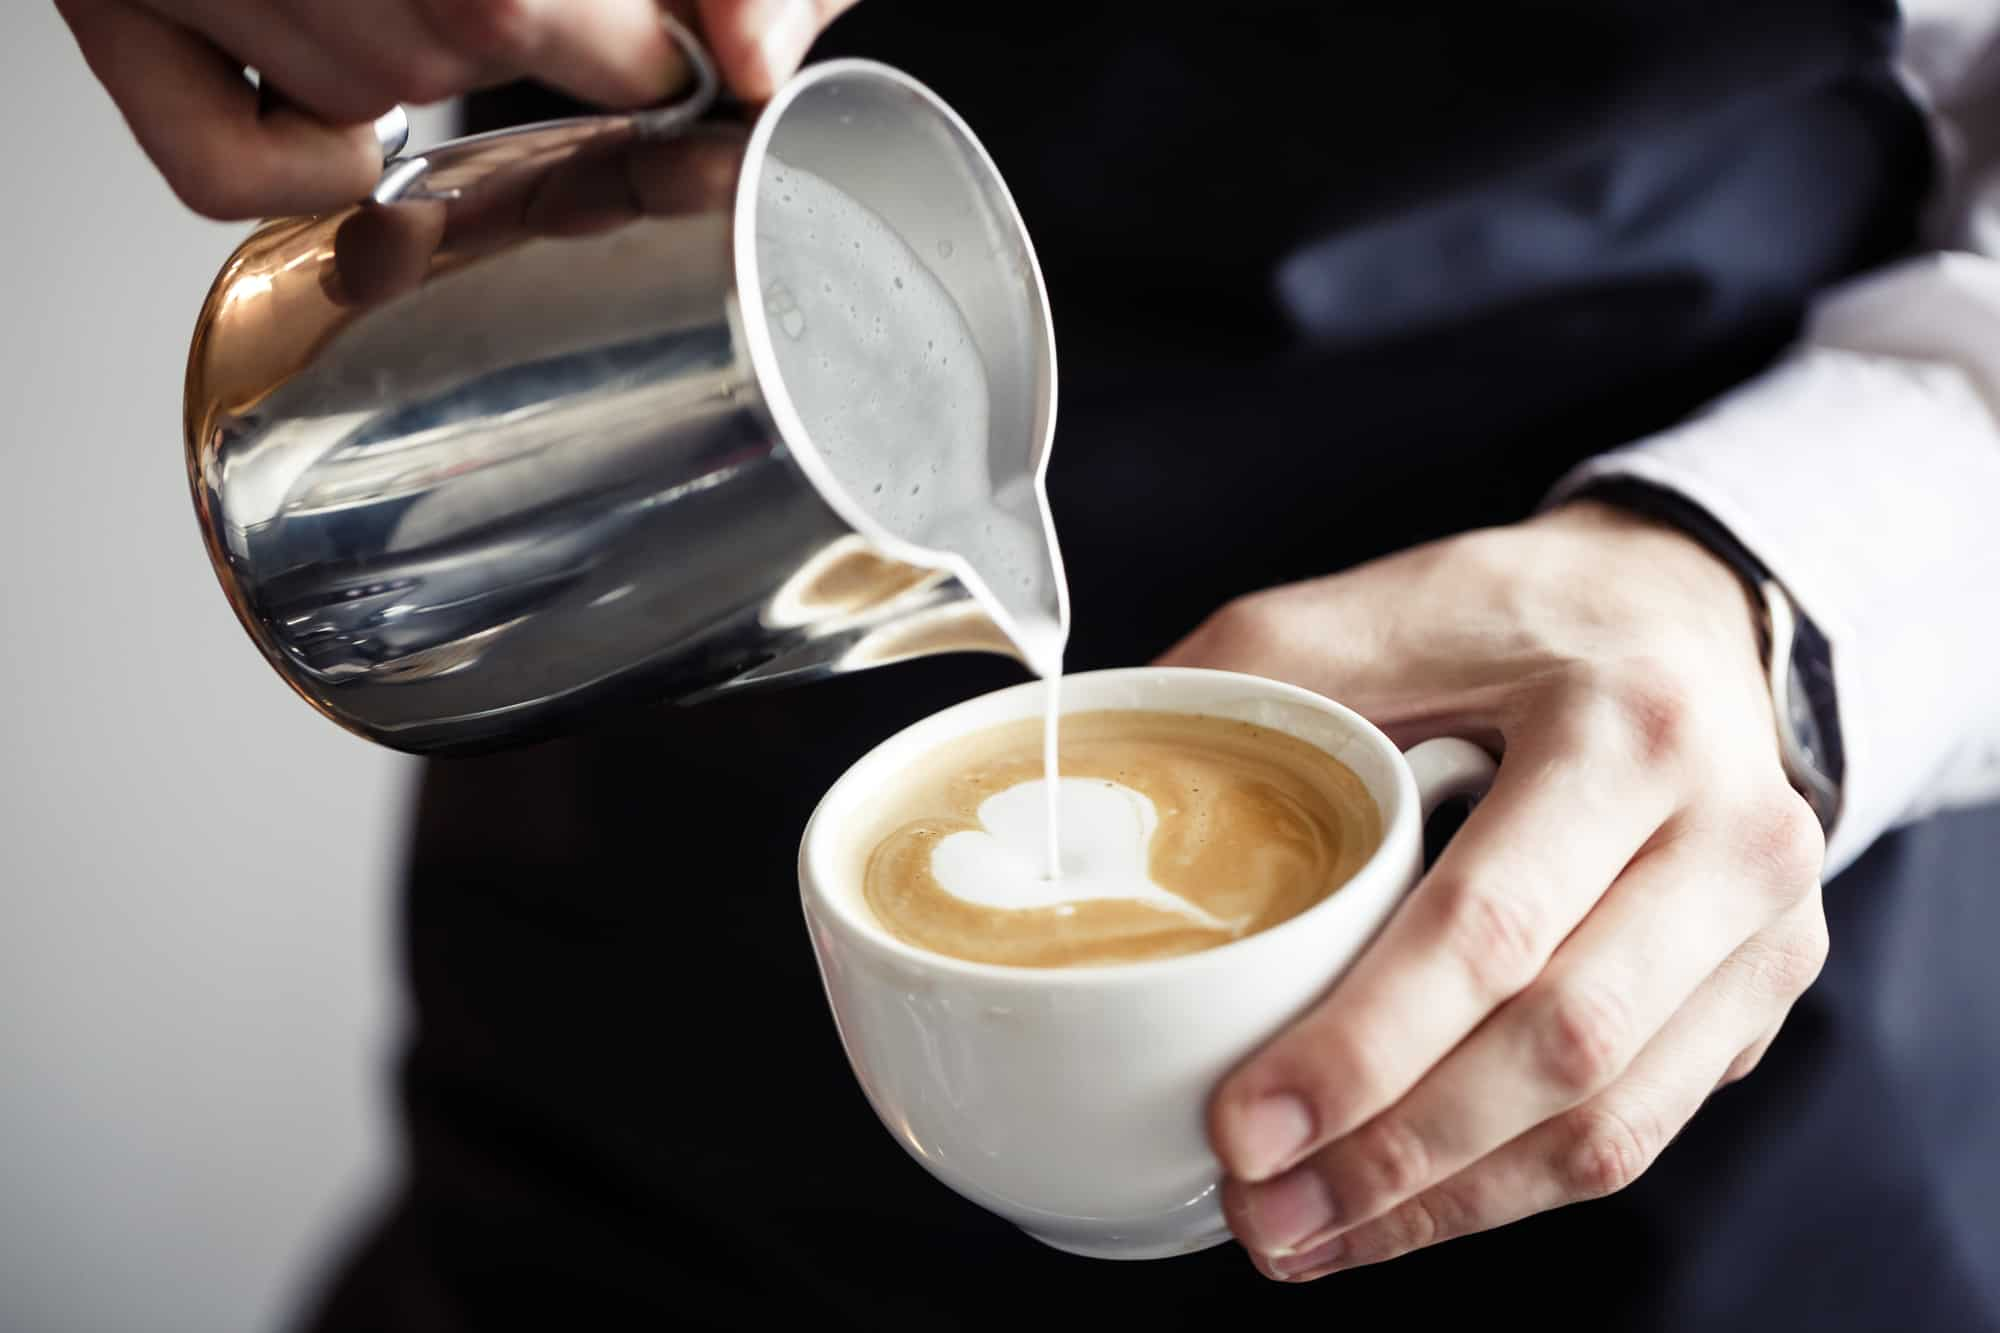 Man pouring creamy froth into coffee cup